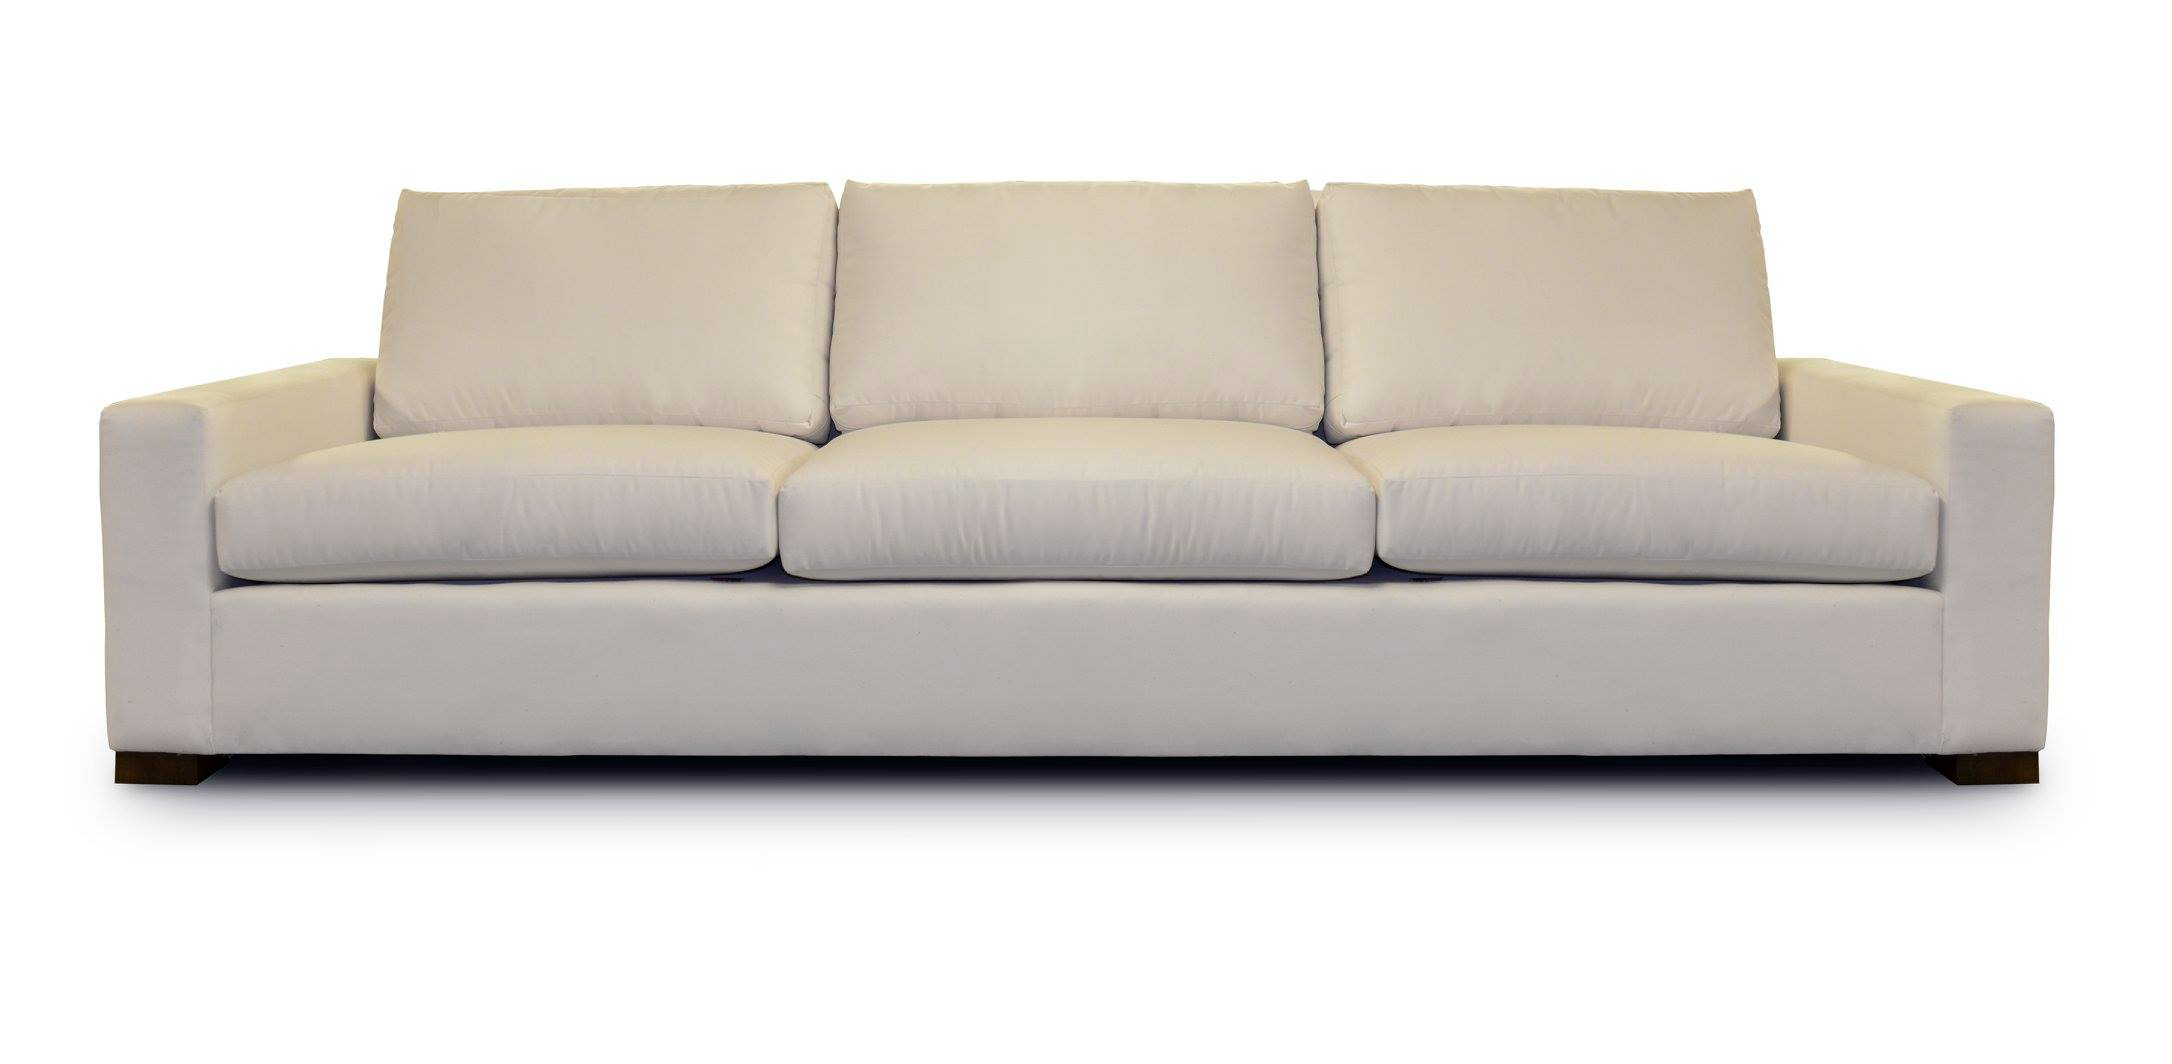 track arm sofa who makes the best beds mcqueen sofas and sectionals of iron oak